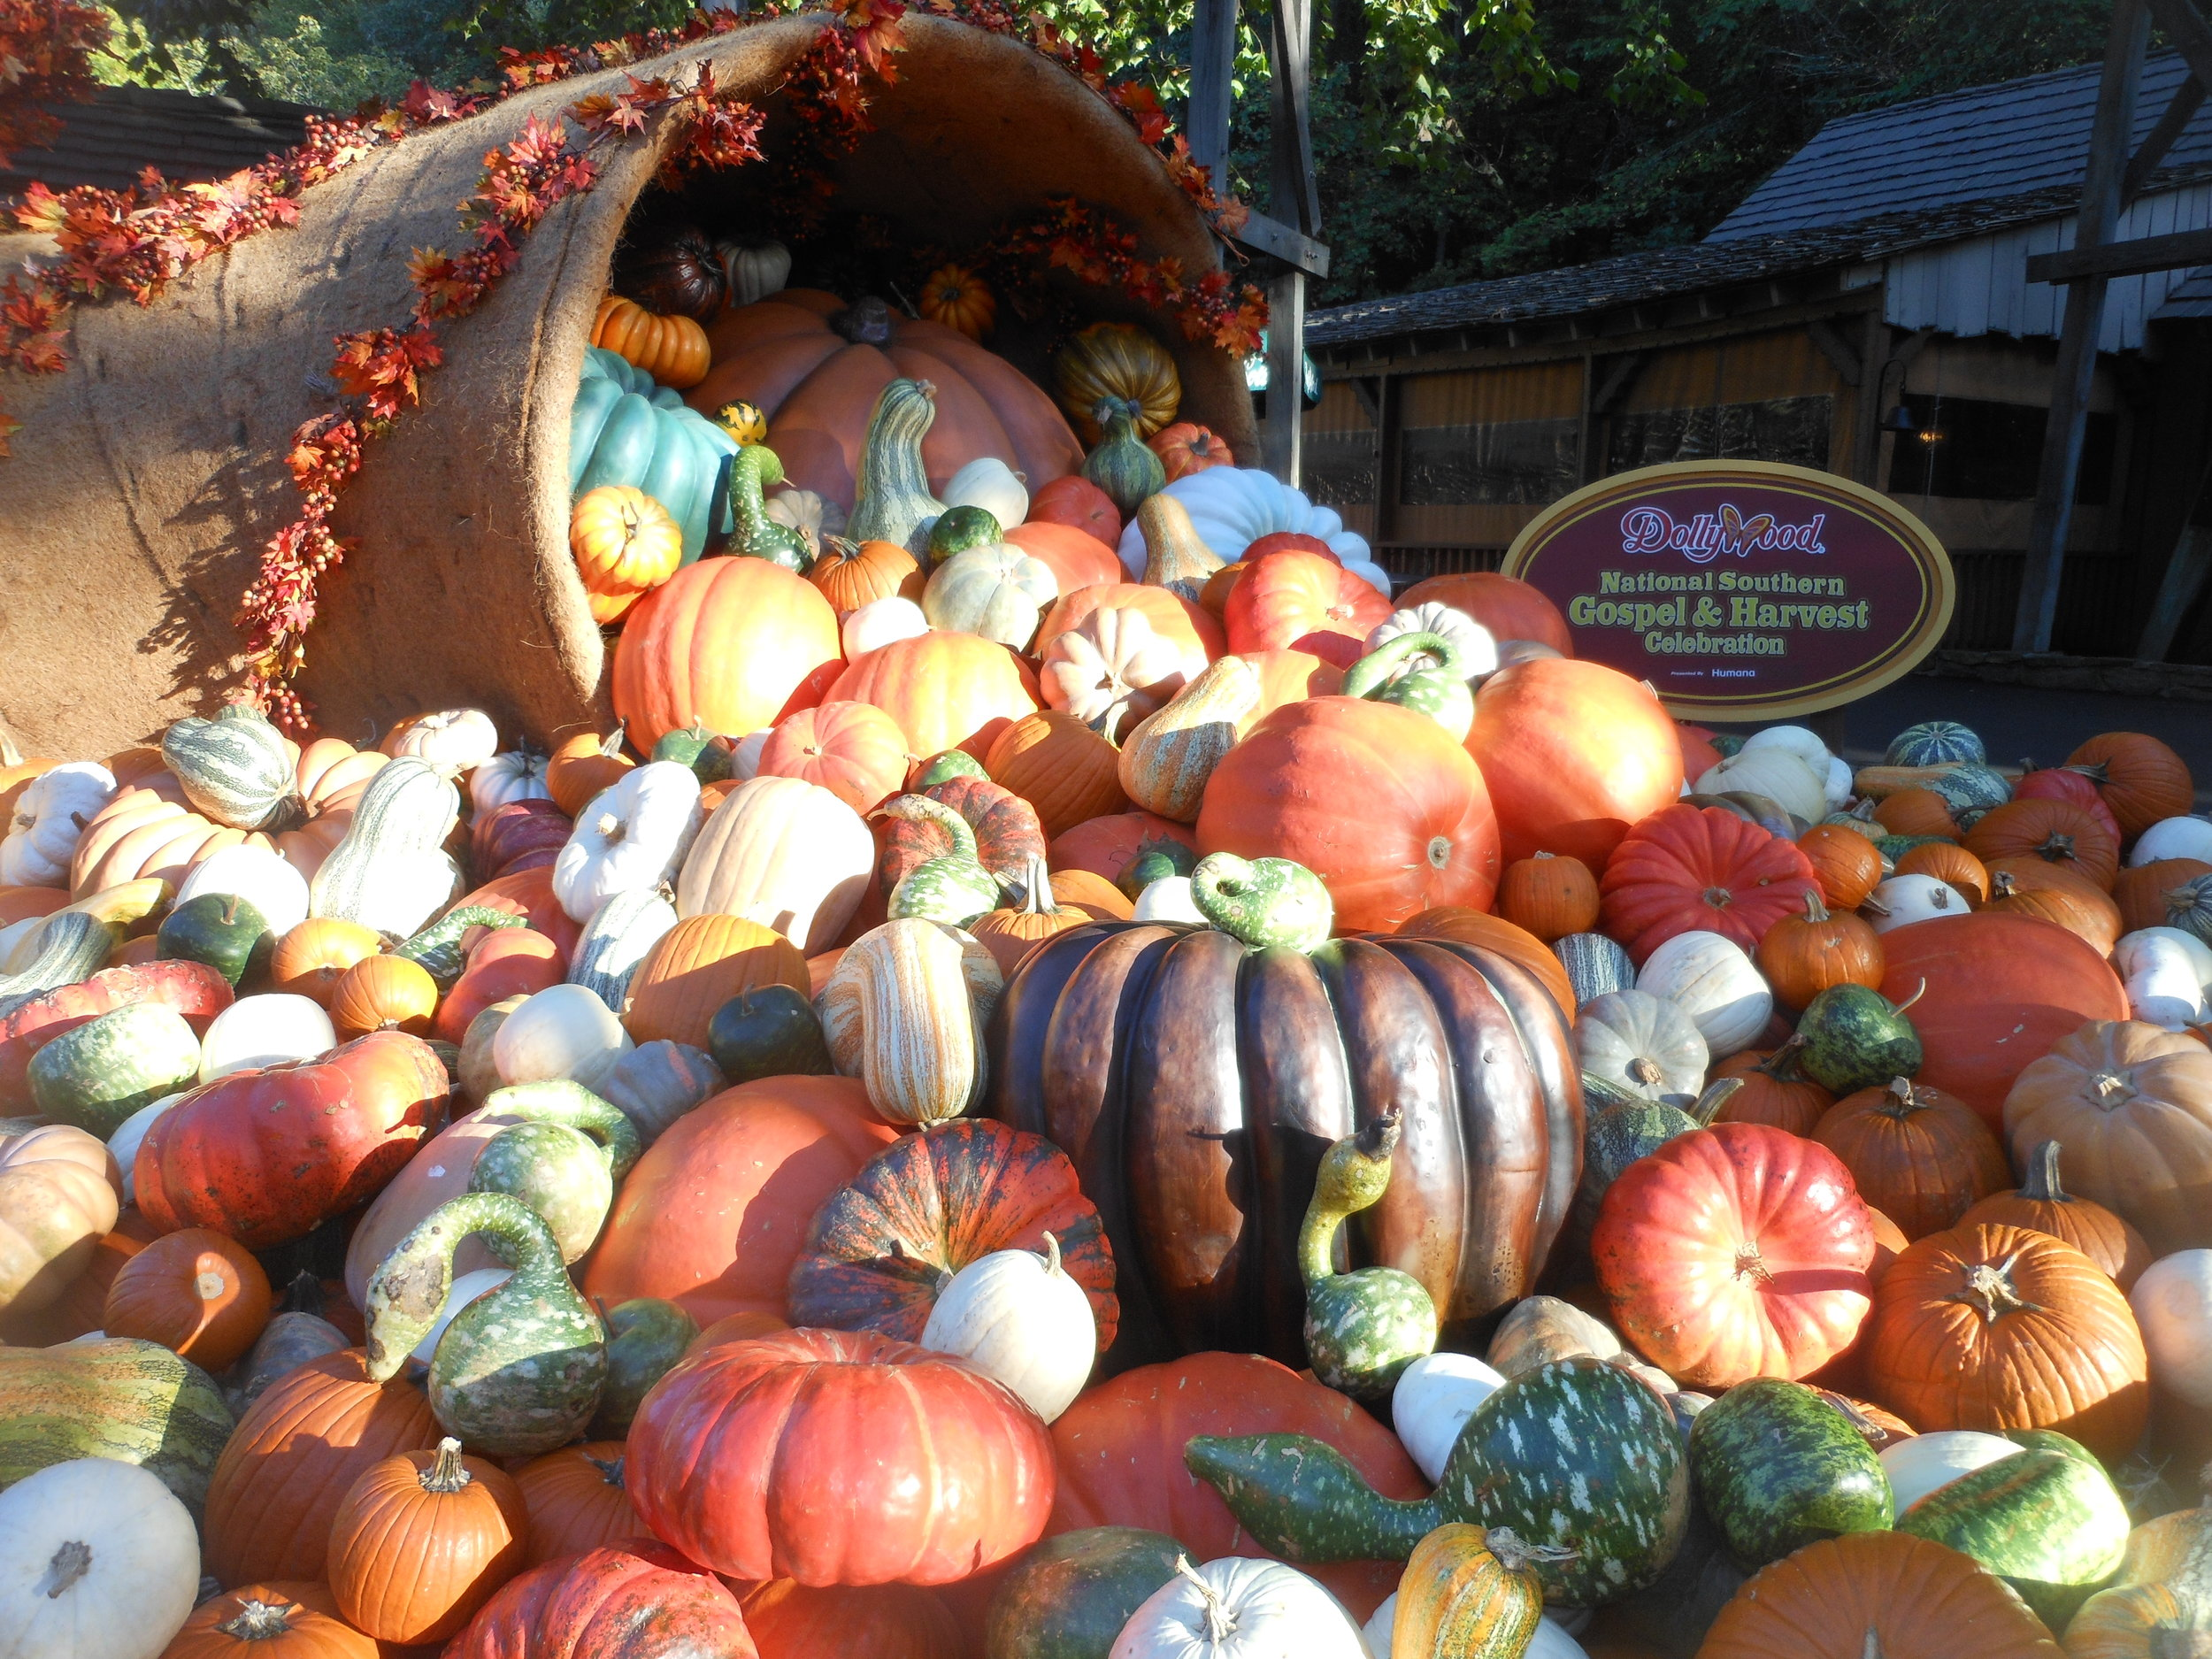 During the Harvest Festival the park is filled with wonderful displays like this one.